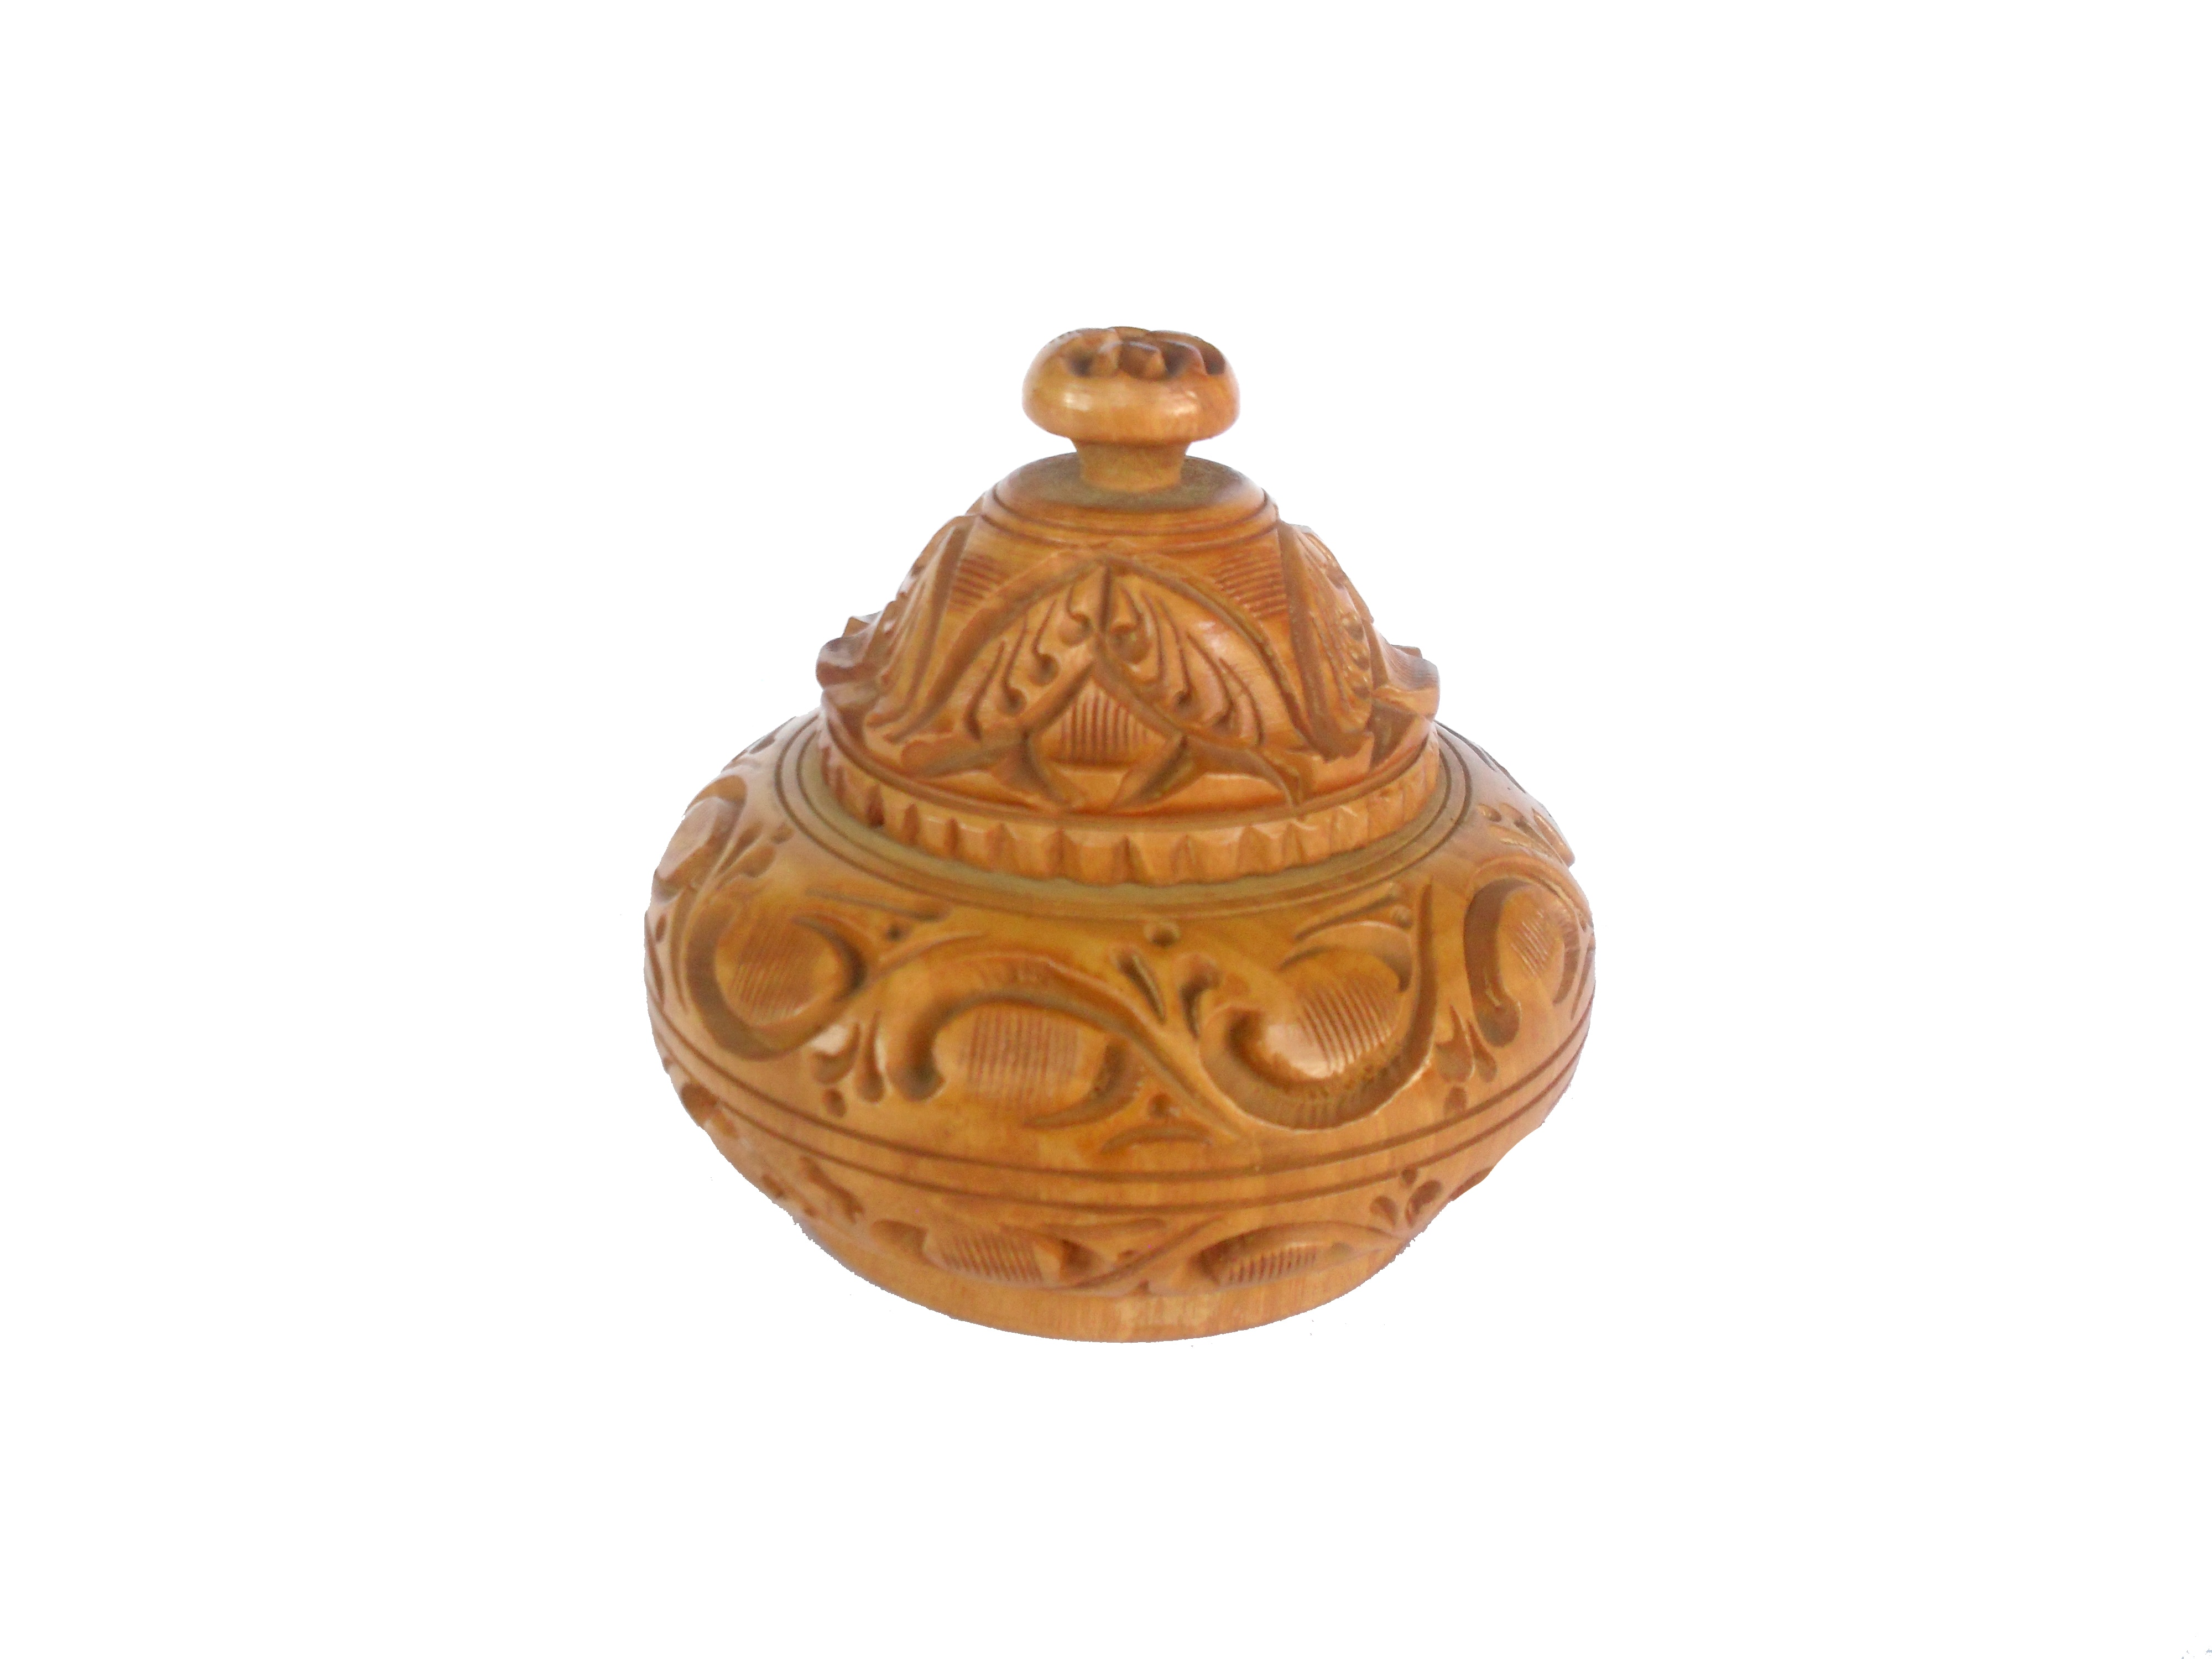 A round pot shaped decorative, wooden jewellery box handcrafted from beautiful cedar wood, adorned with simple design carving on the top of the box . Wooden Jewellery box   to store all your precious jewelry like earrings, toe rings & cufflings. Use it to adorn your dressing table or any corner table of your choice.